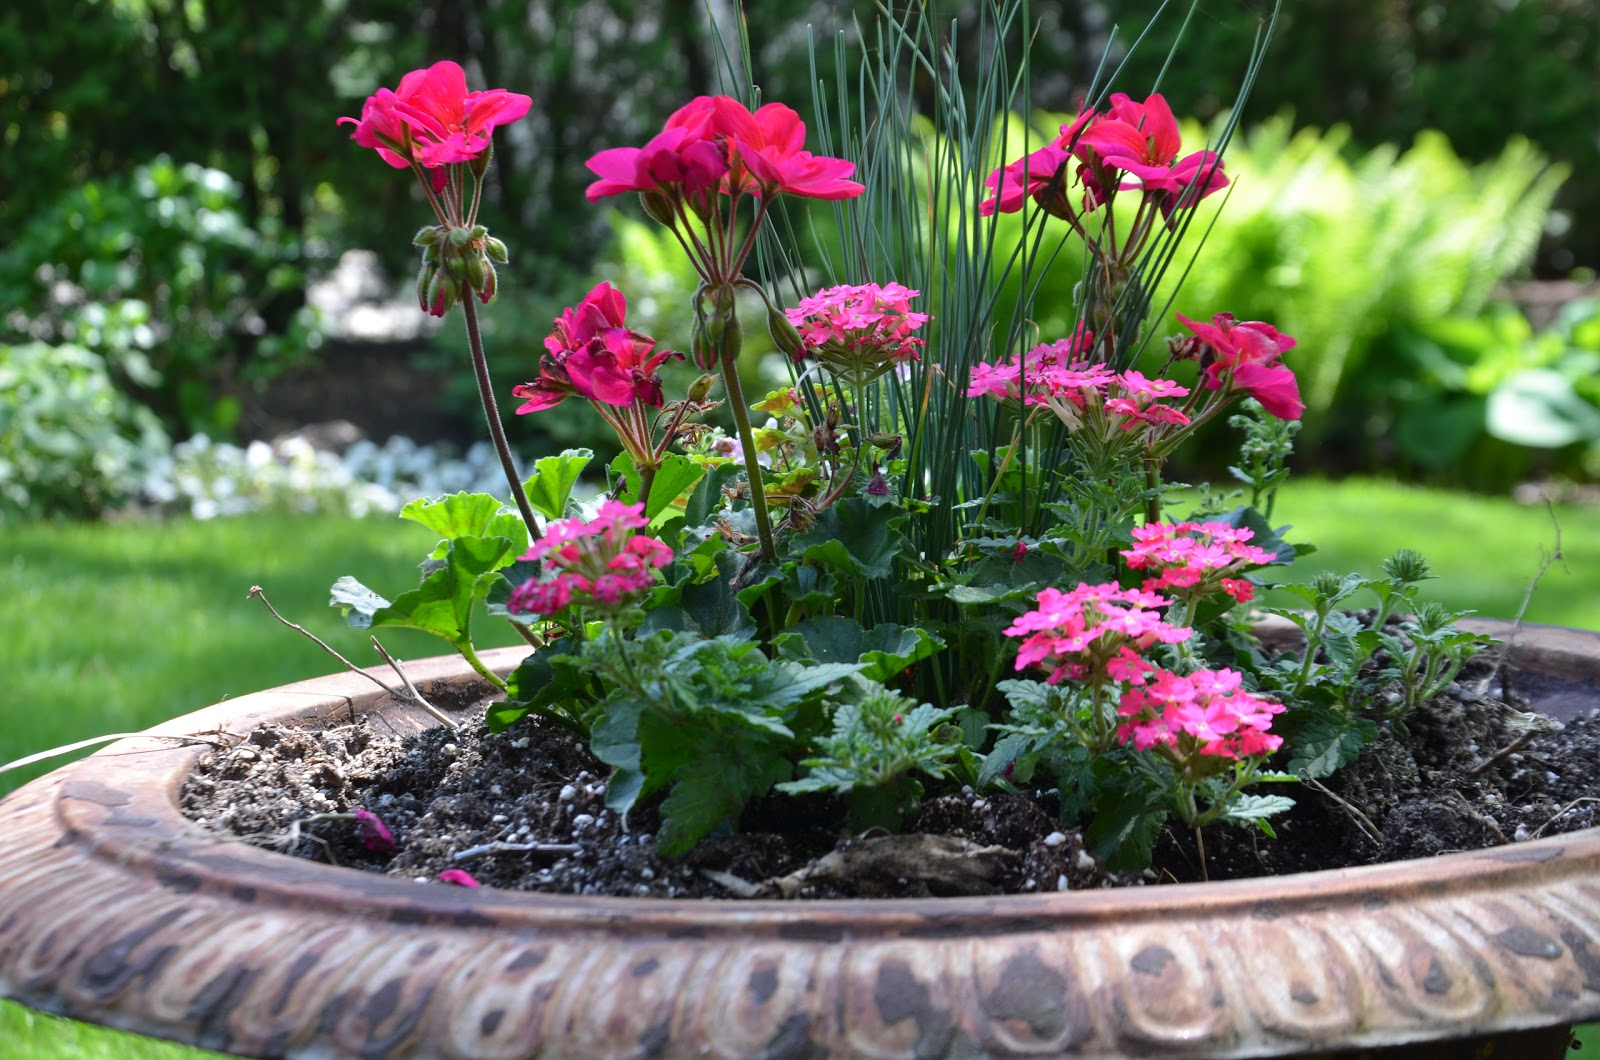 Here In Southeast Michigan The Safe Bet Is To Wait Until Middle Of May Plant Warm Weather Annuals Like Petunias Impatiens And Geraniums